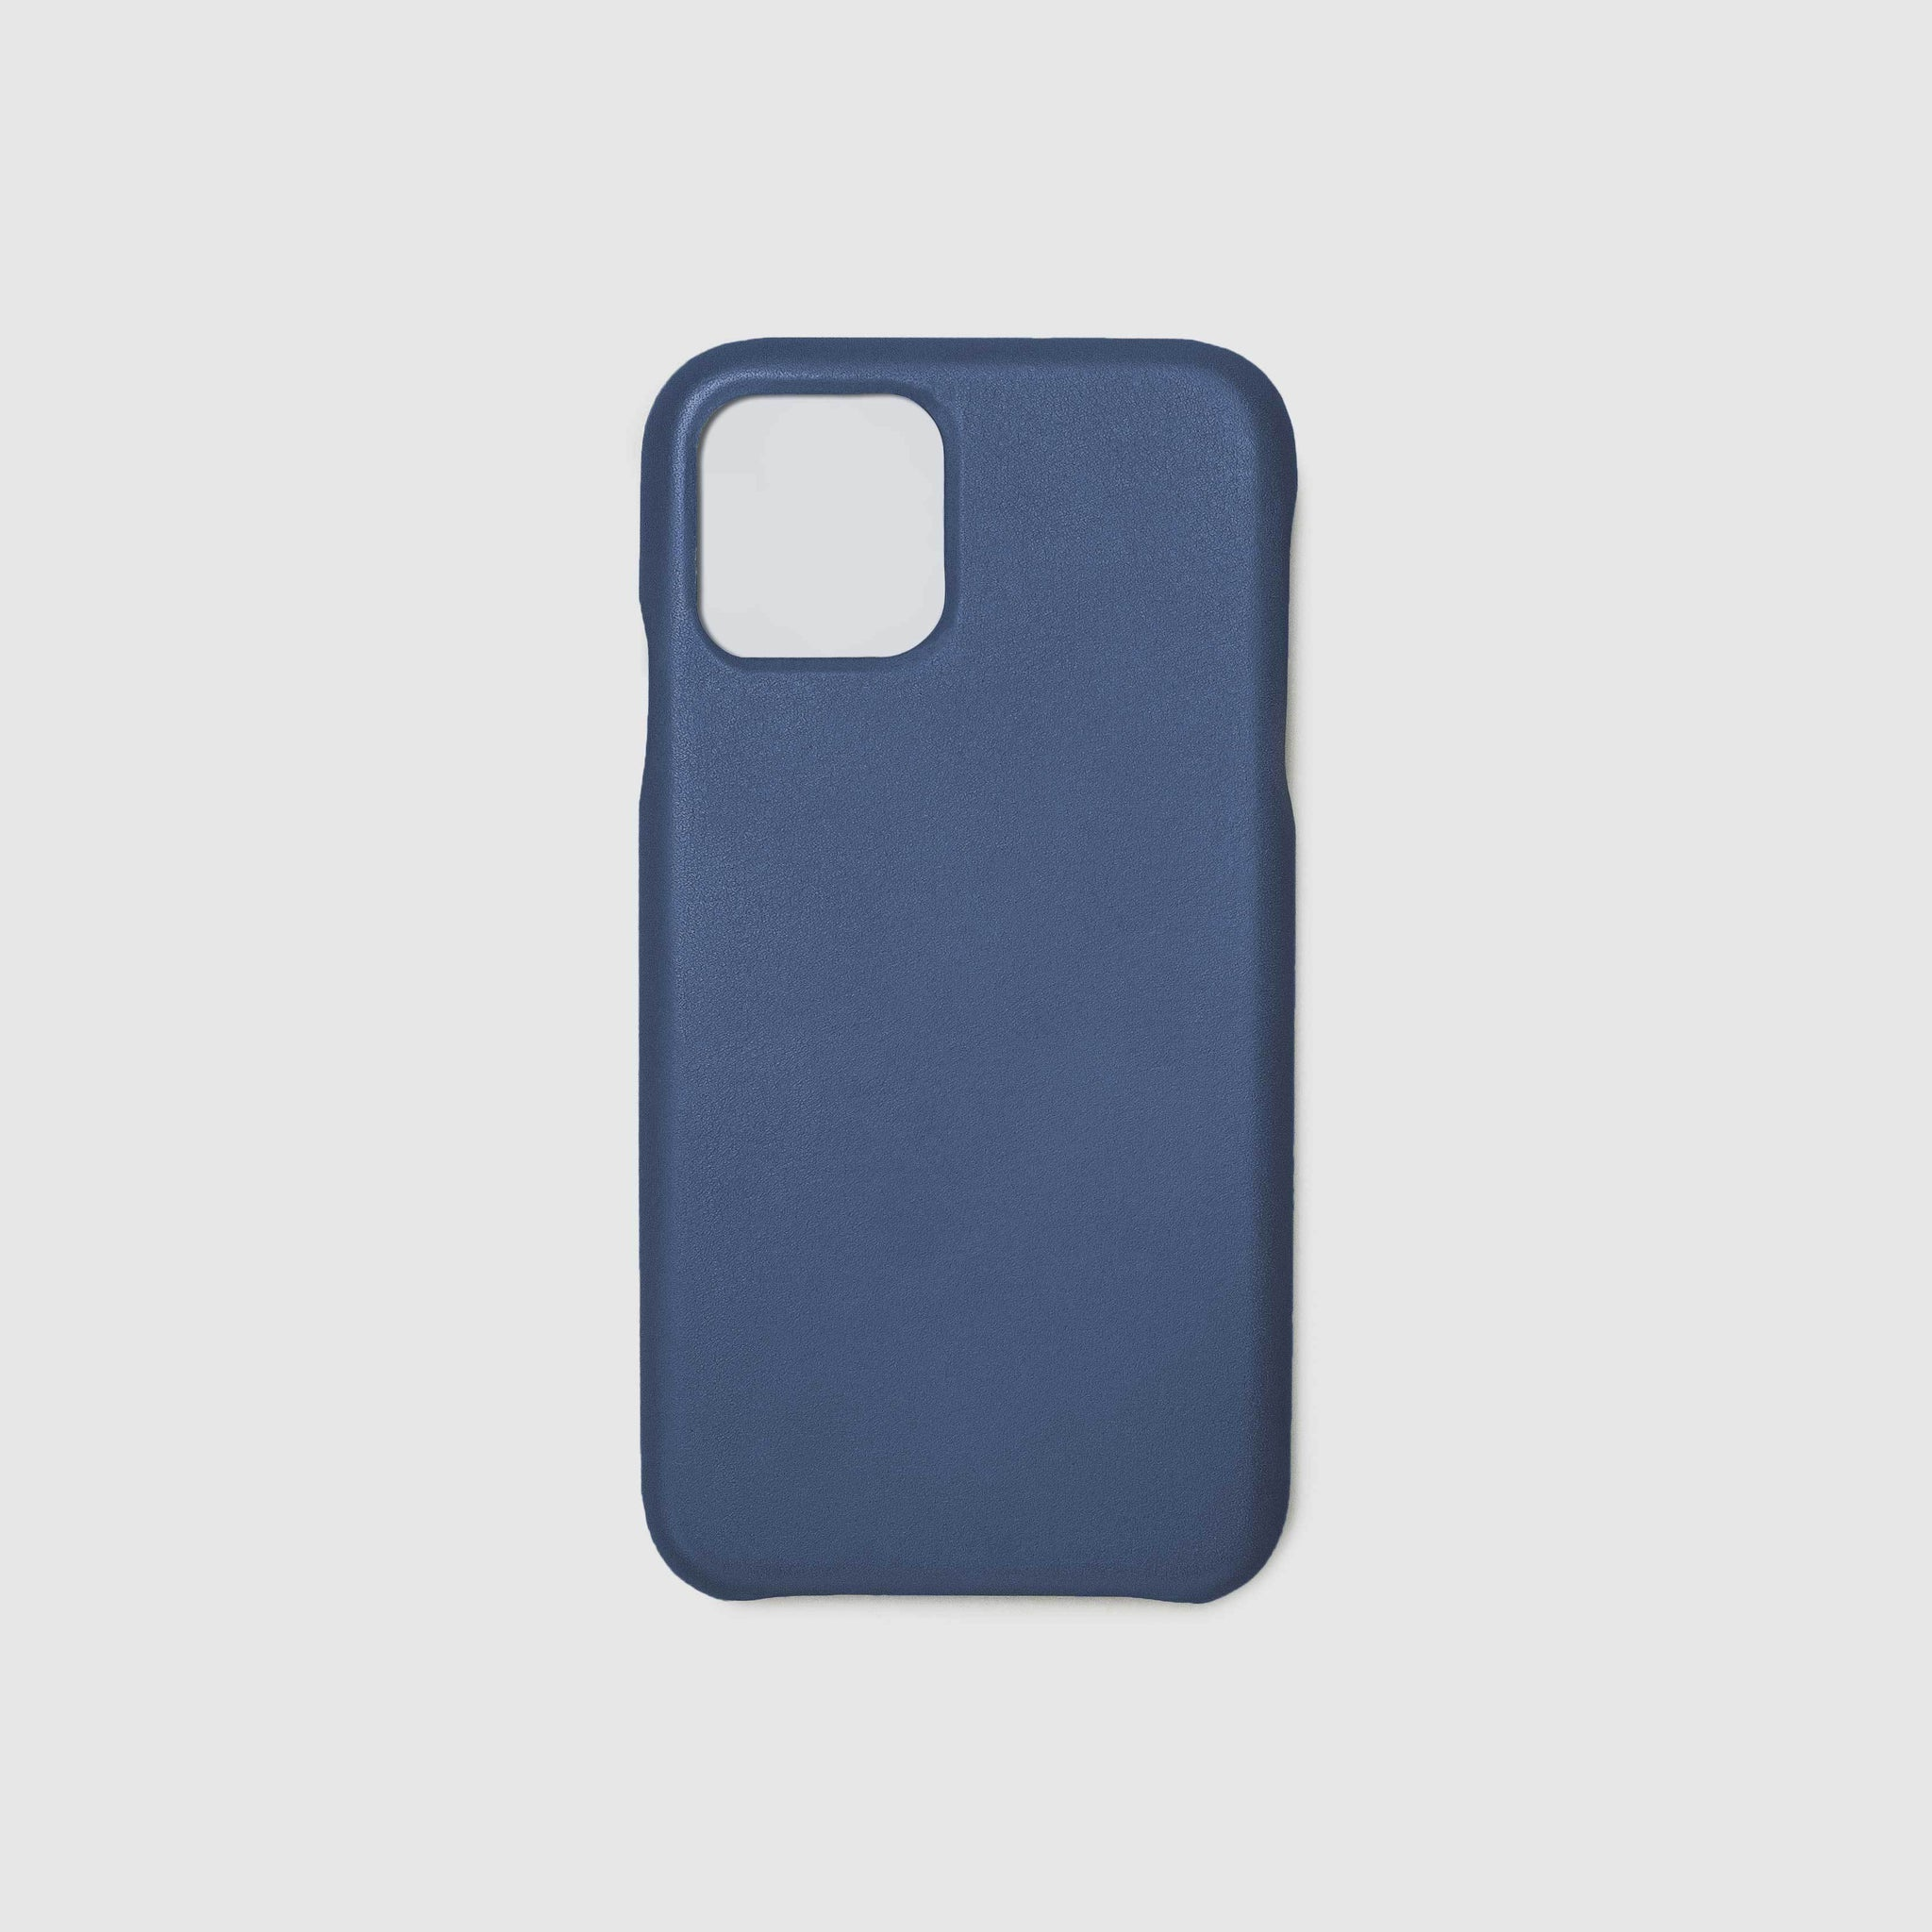 anson calder iphone case french calfskin 11 eleven pro max leather _cobalt